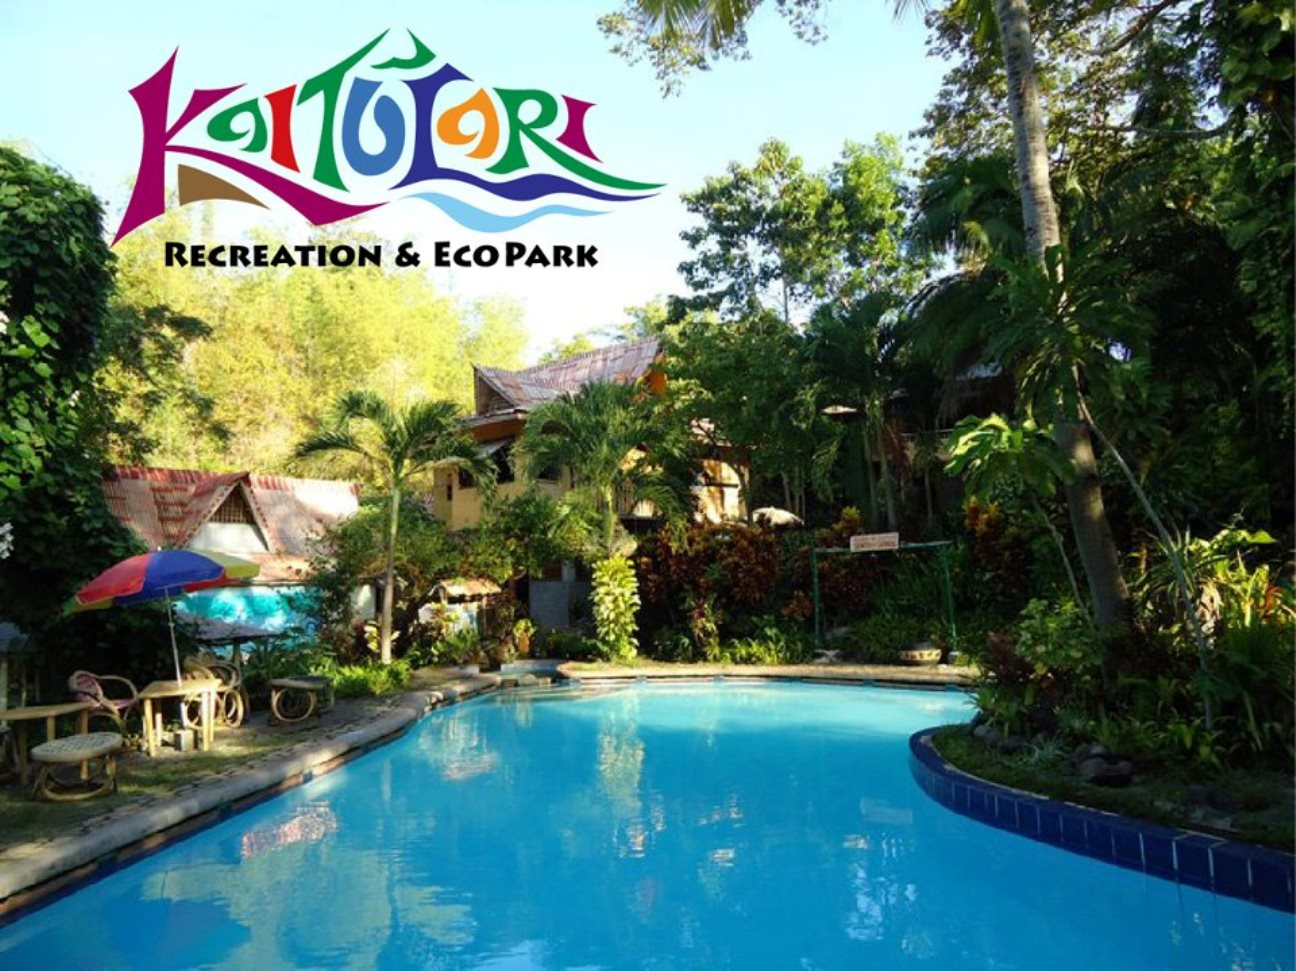 How To Get There In Kaitulari Resorts Attracttour